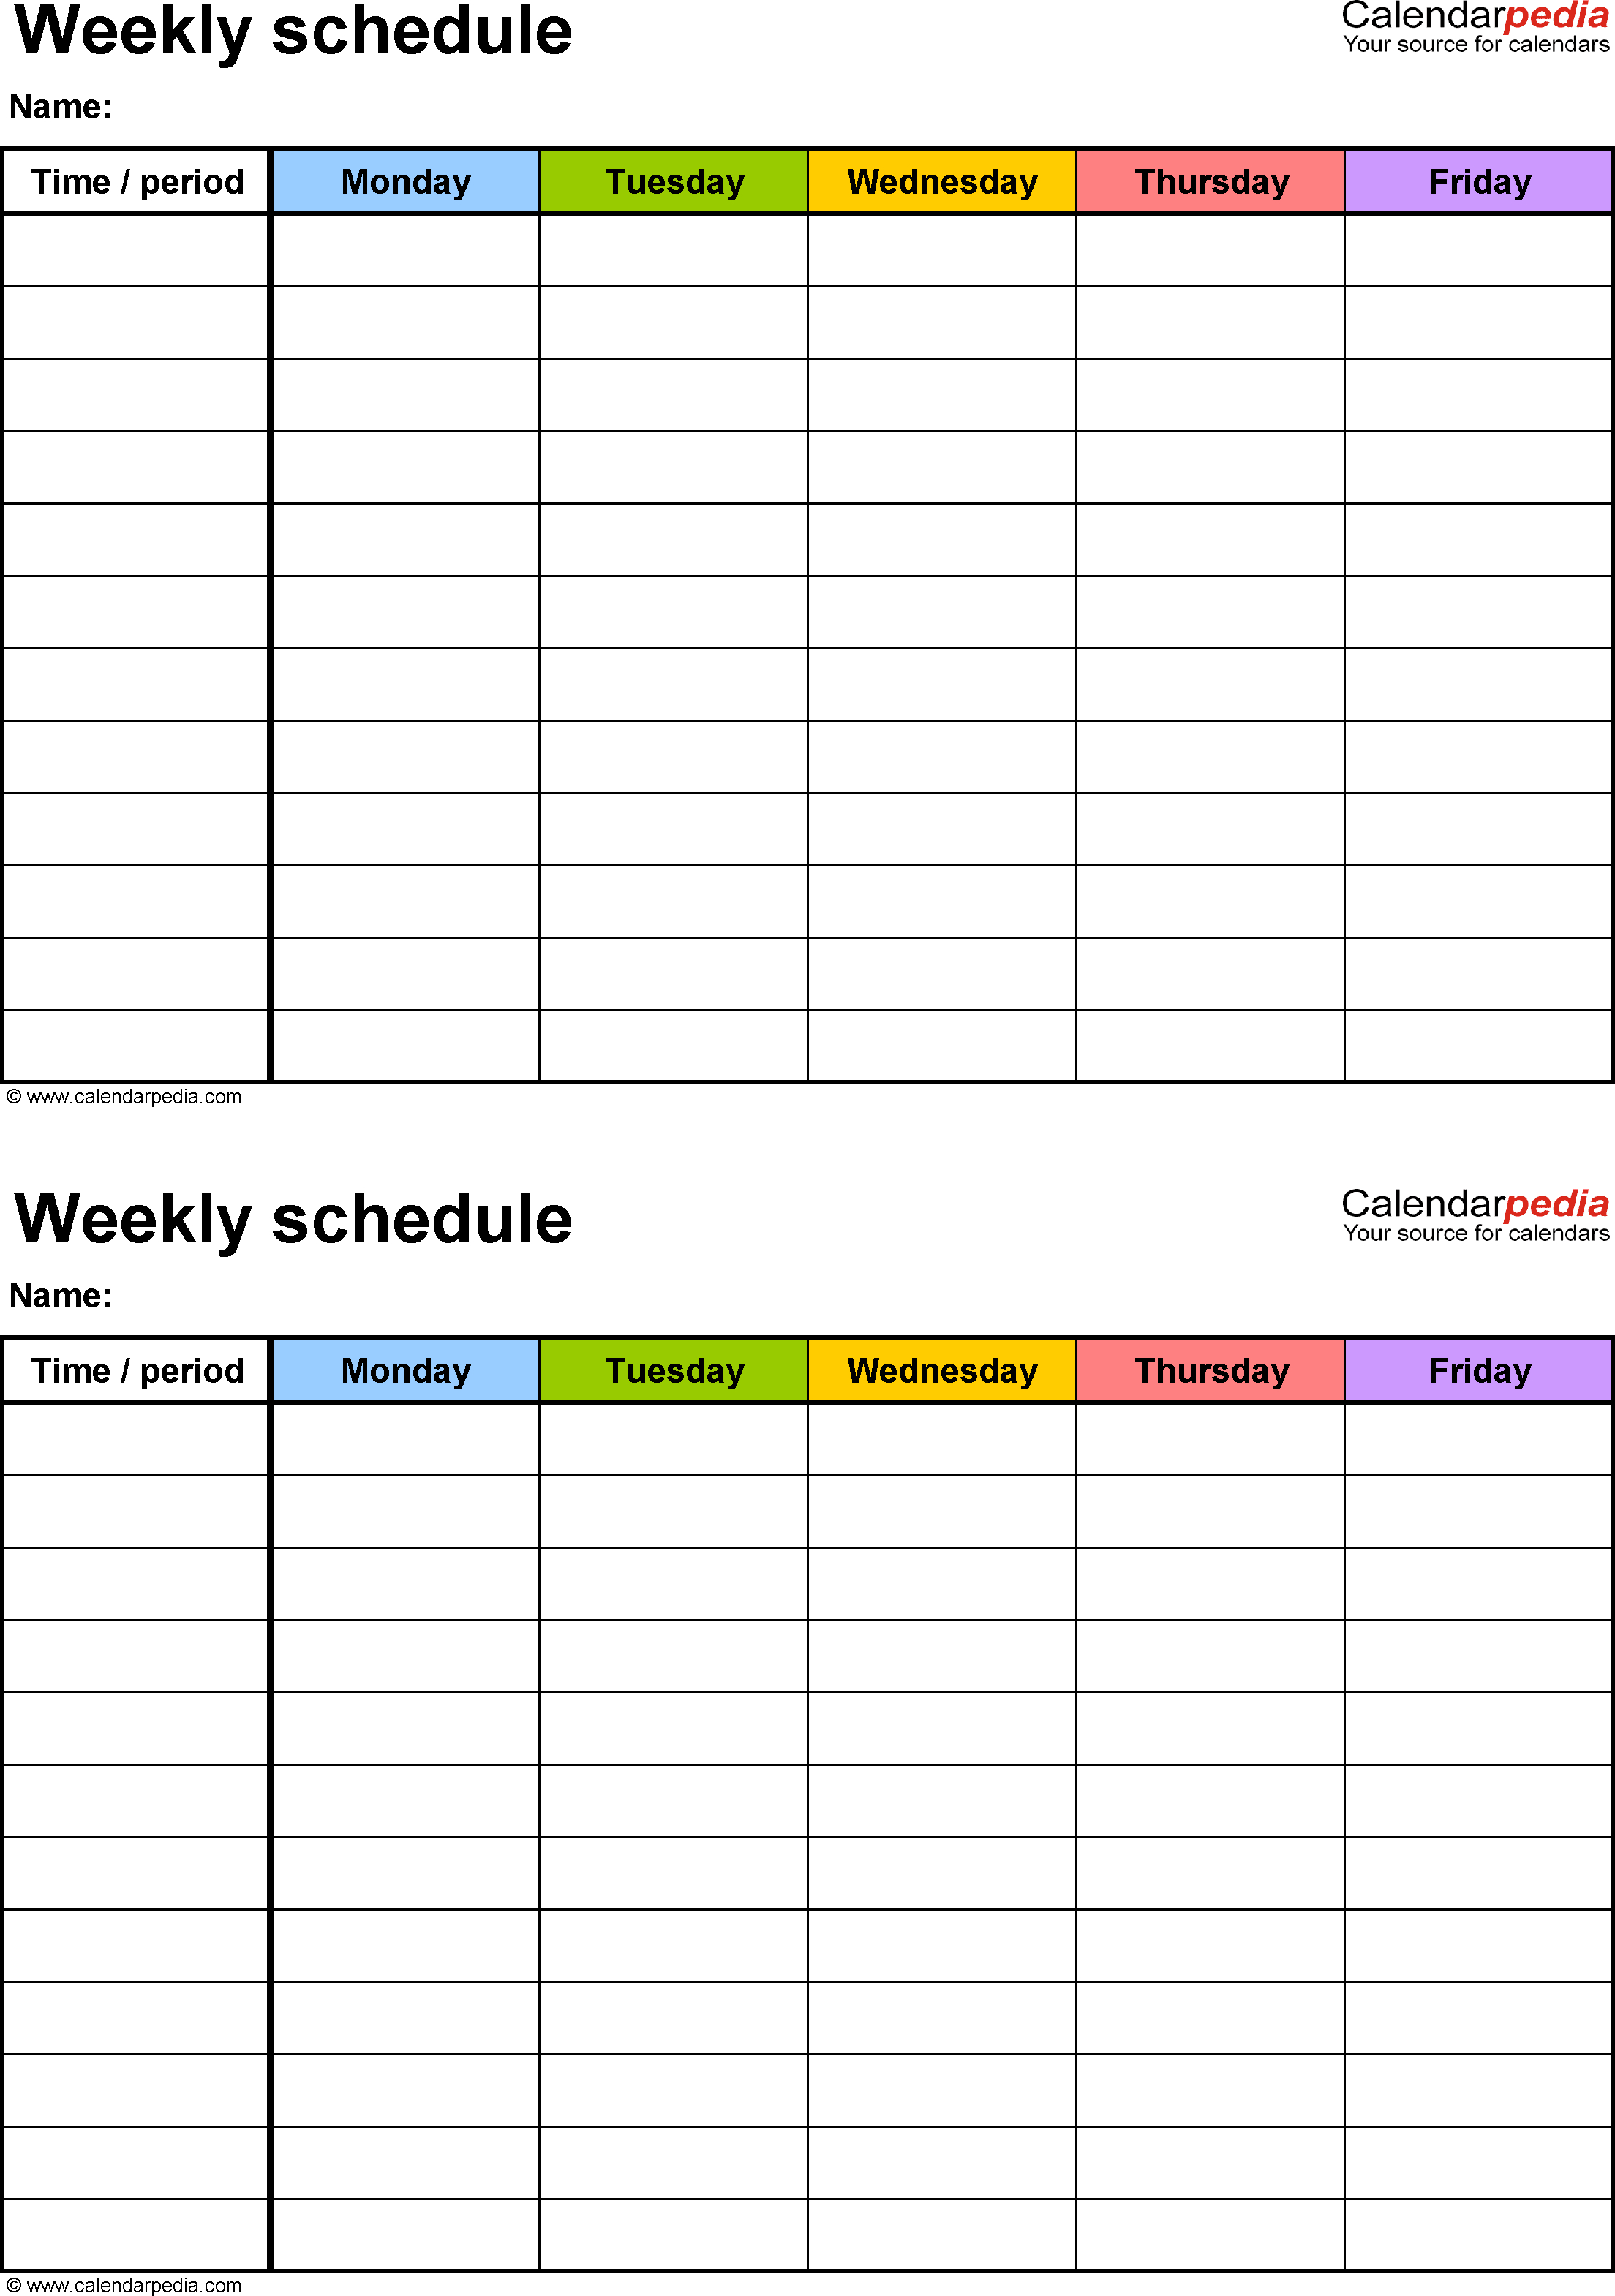 Free Weekly Schedule Templates For Excel - 18 Templates inside 7-Day Work Schedule Template Printable